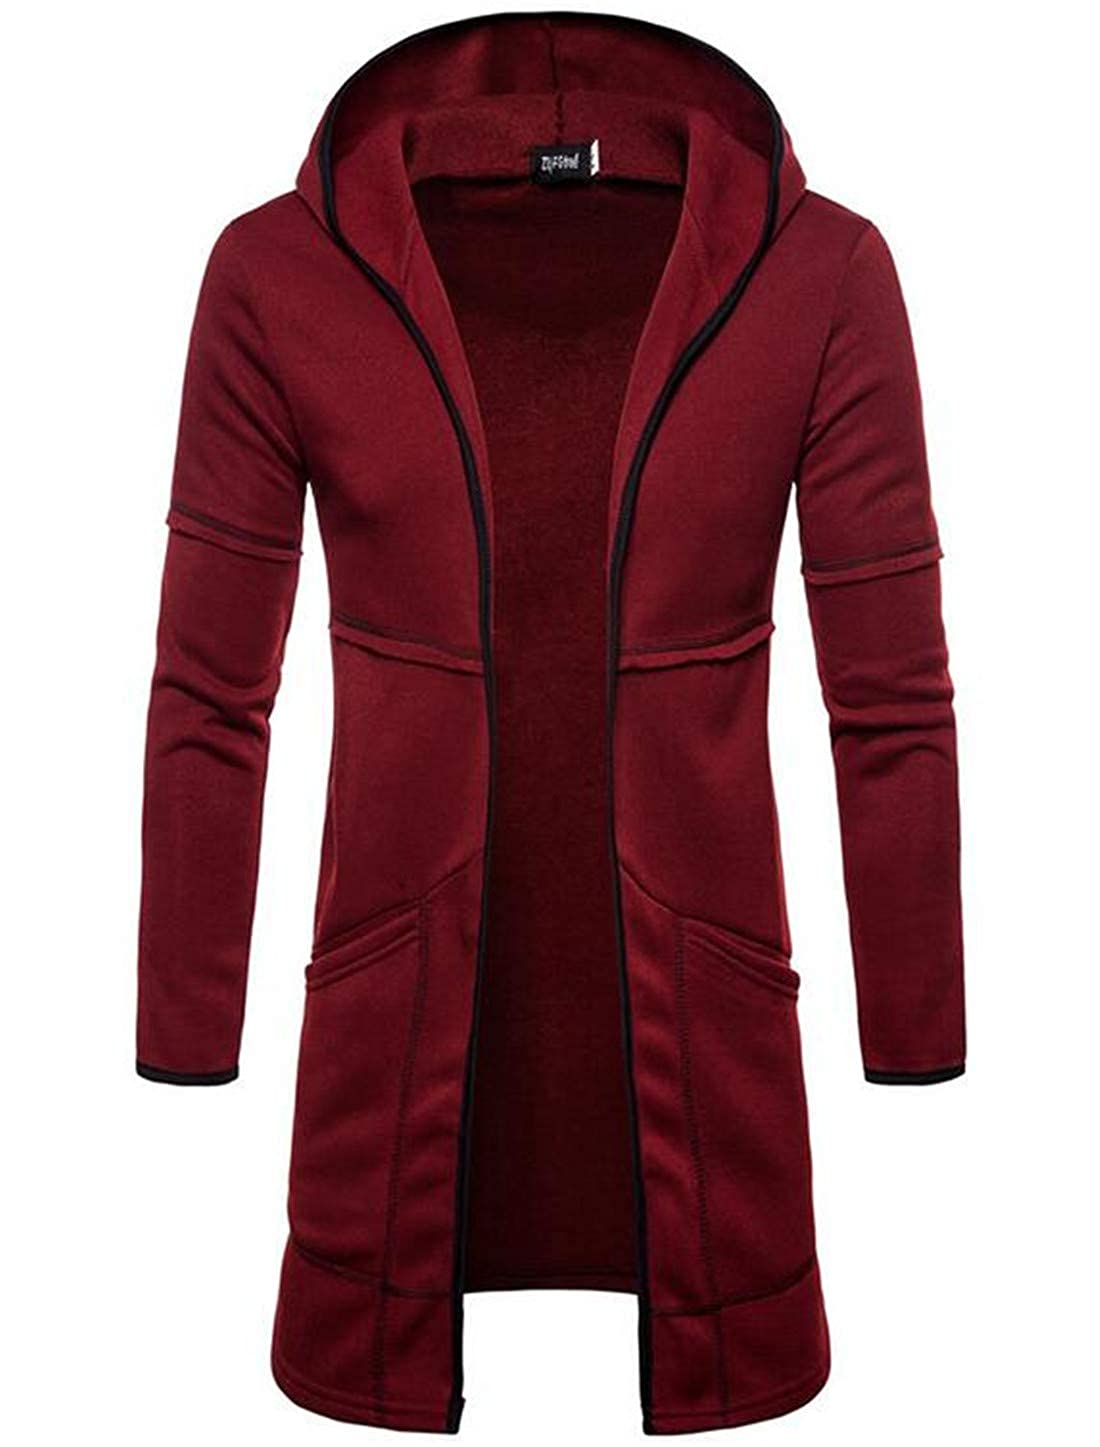 Valoda Men Casual Open Frint Solid Hooded Long Sleeve Cardigan Blouse Sweater